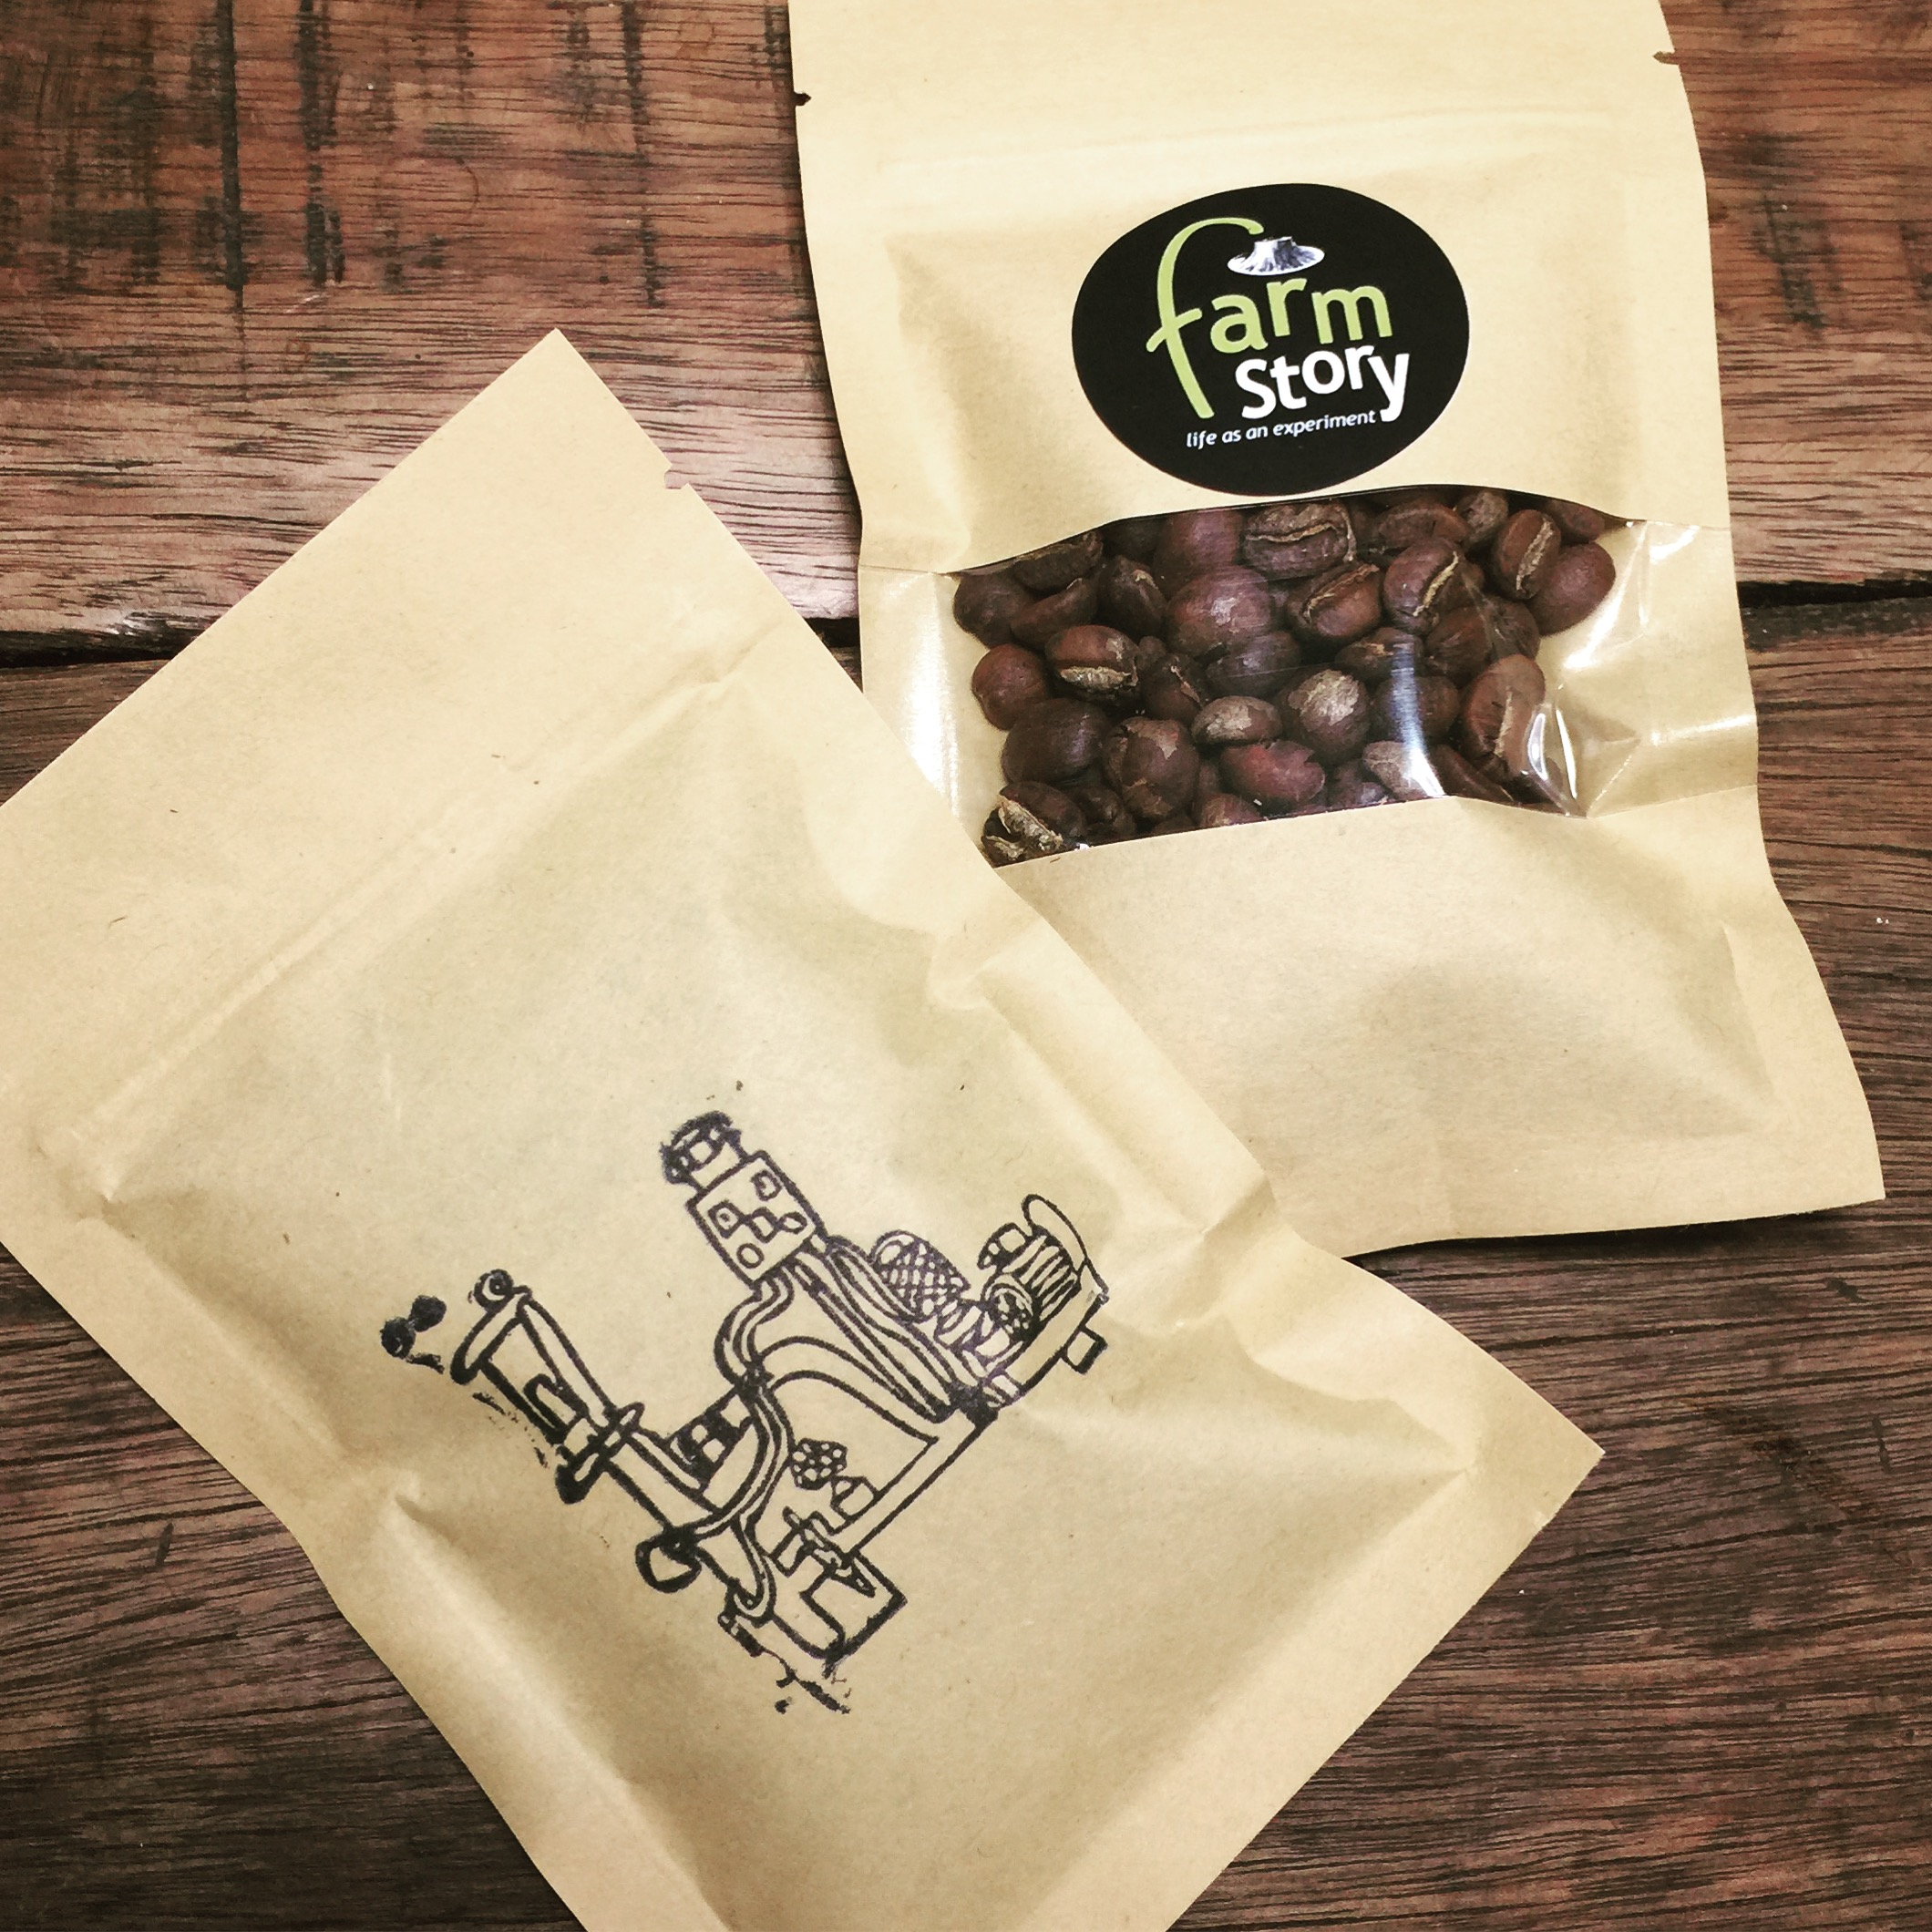 Bring some beans home to enjoy!